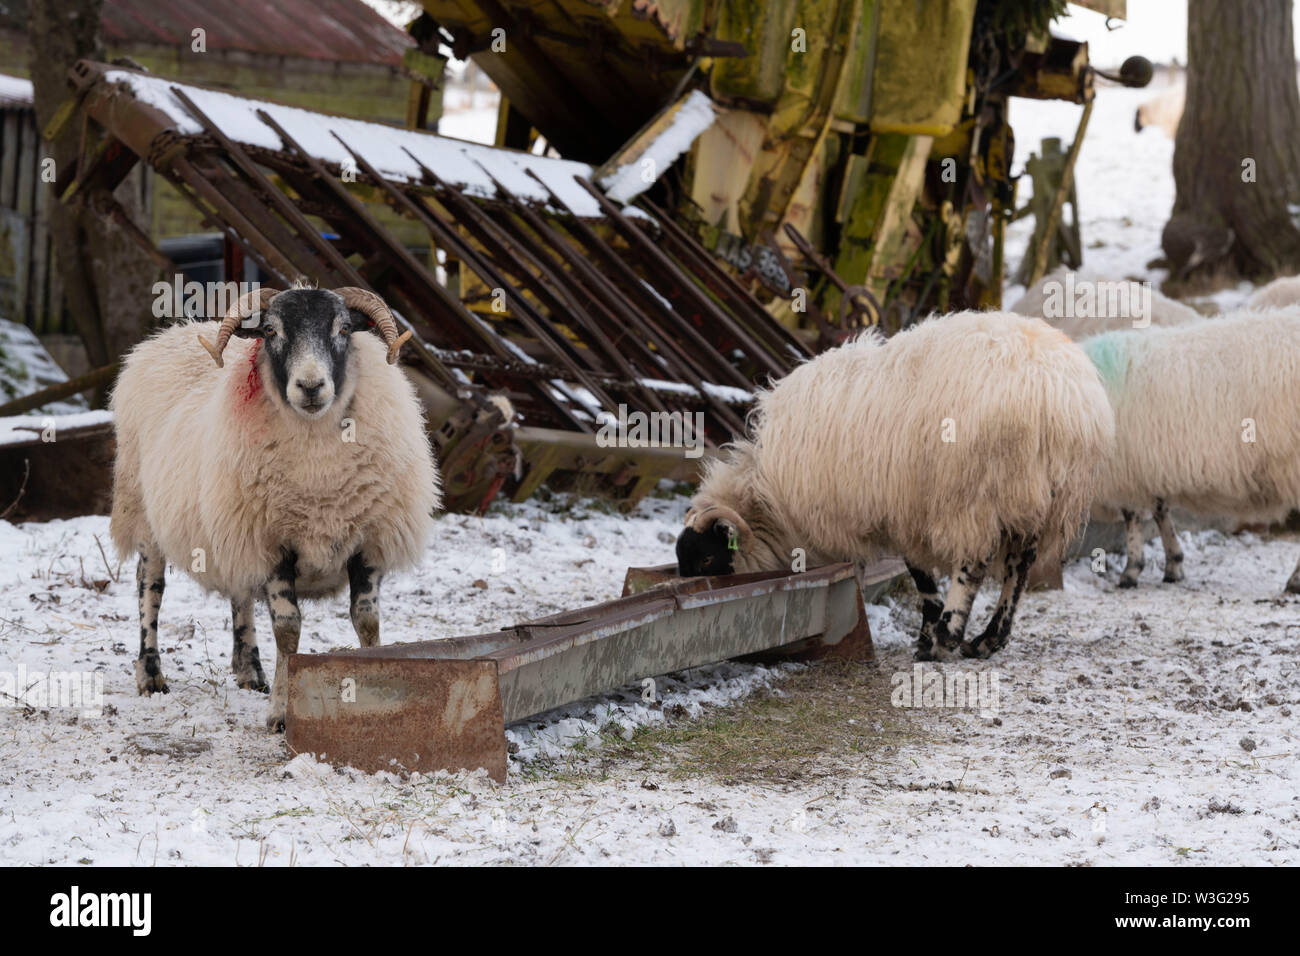 Scottish Blackface Sheep Feeding at a Trough on a Farm in Aberdeenshire in Winter - Stock Image